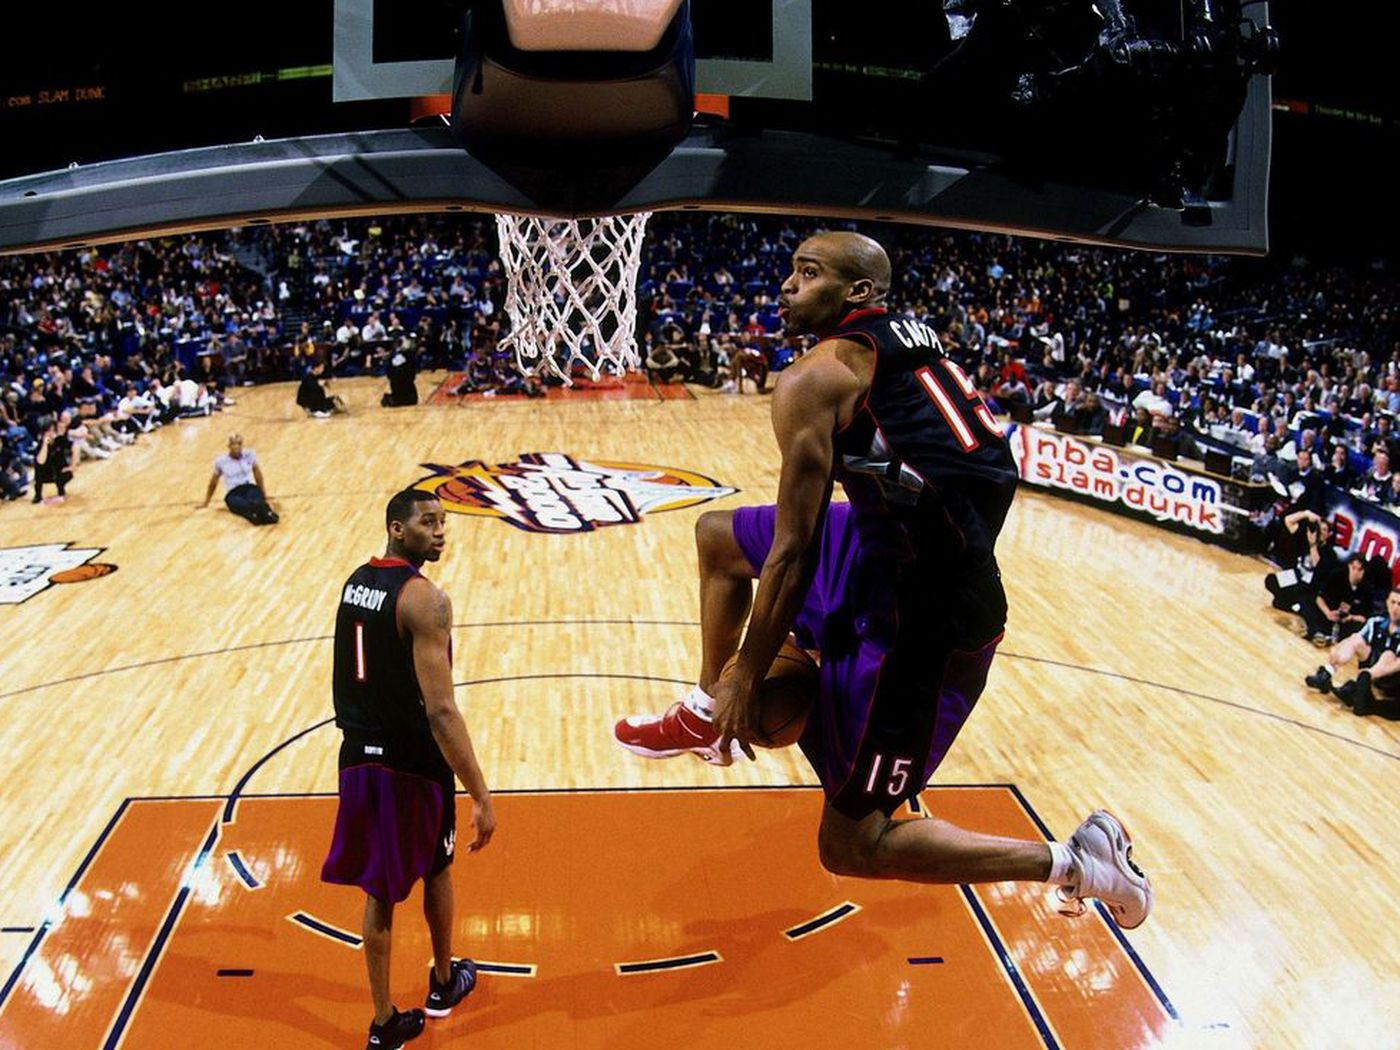 527174ad8559 Reliving The Best (And Worst) Dunk Contests From All-Star Weekend History -  SBNation.com